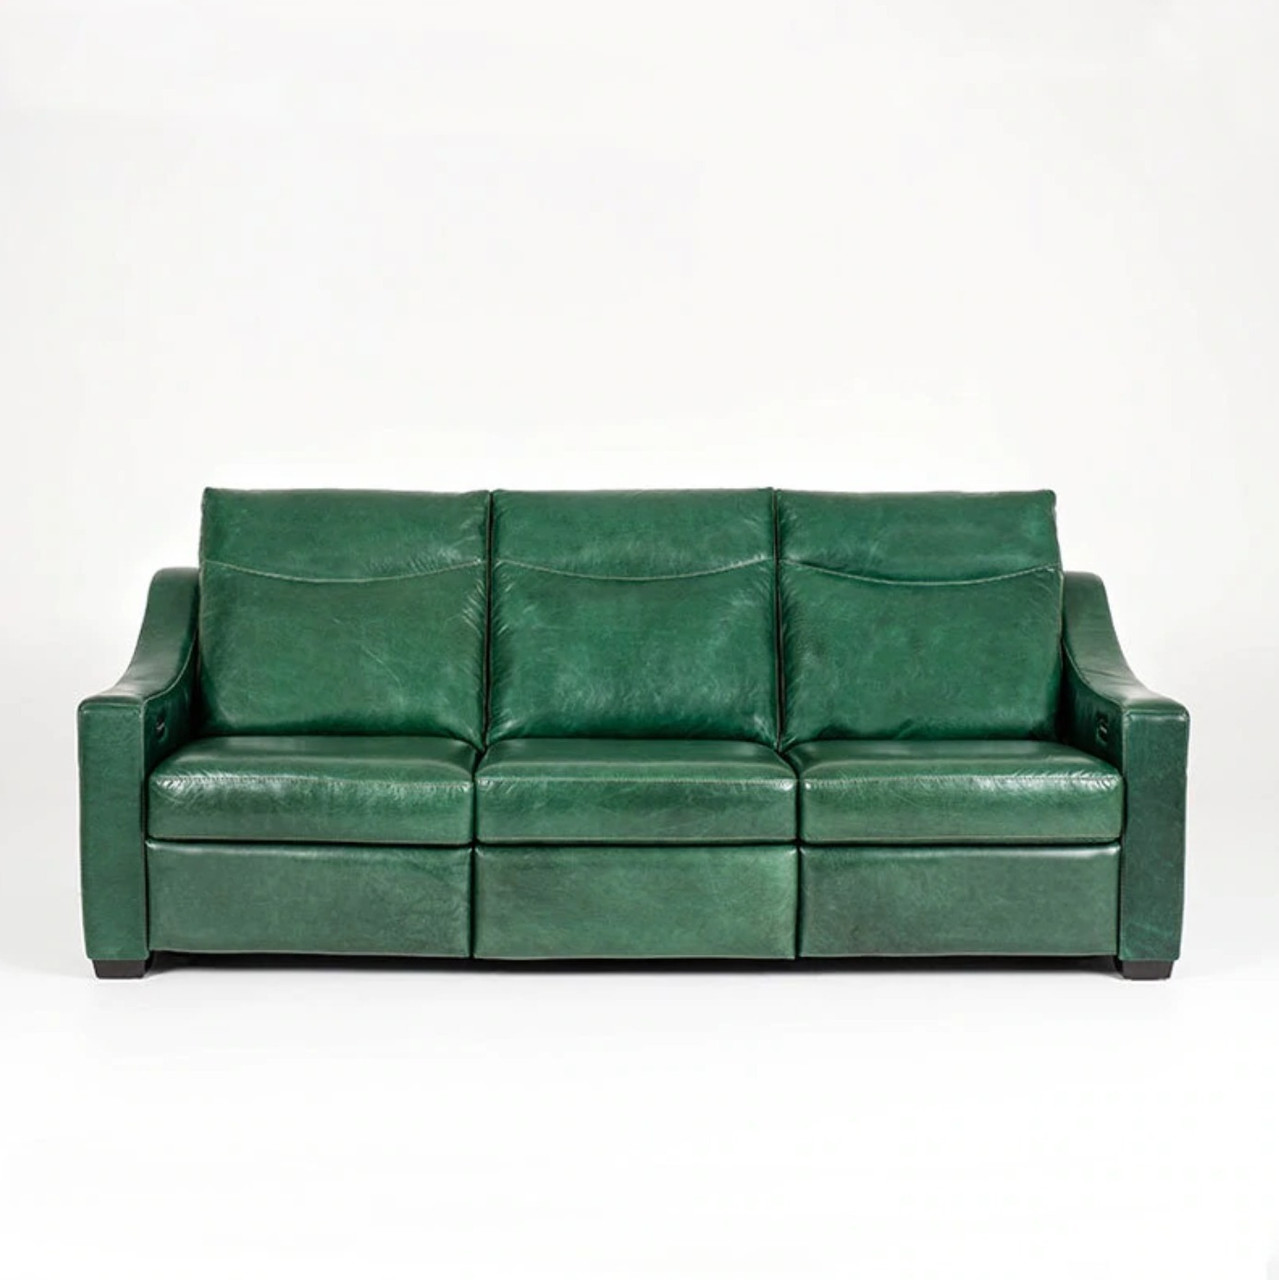 SARASOTA MOTION SOFA